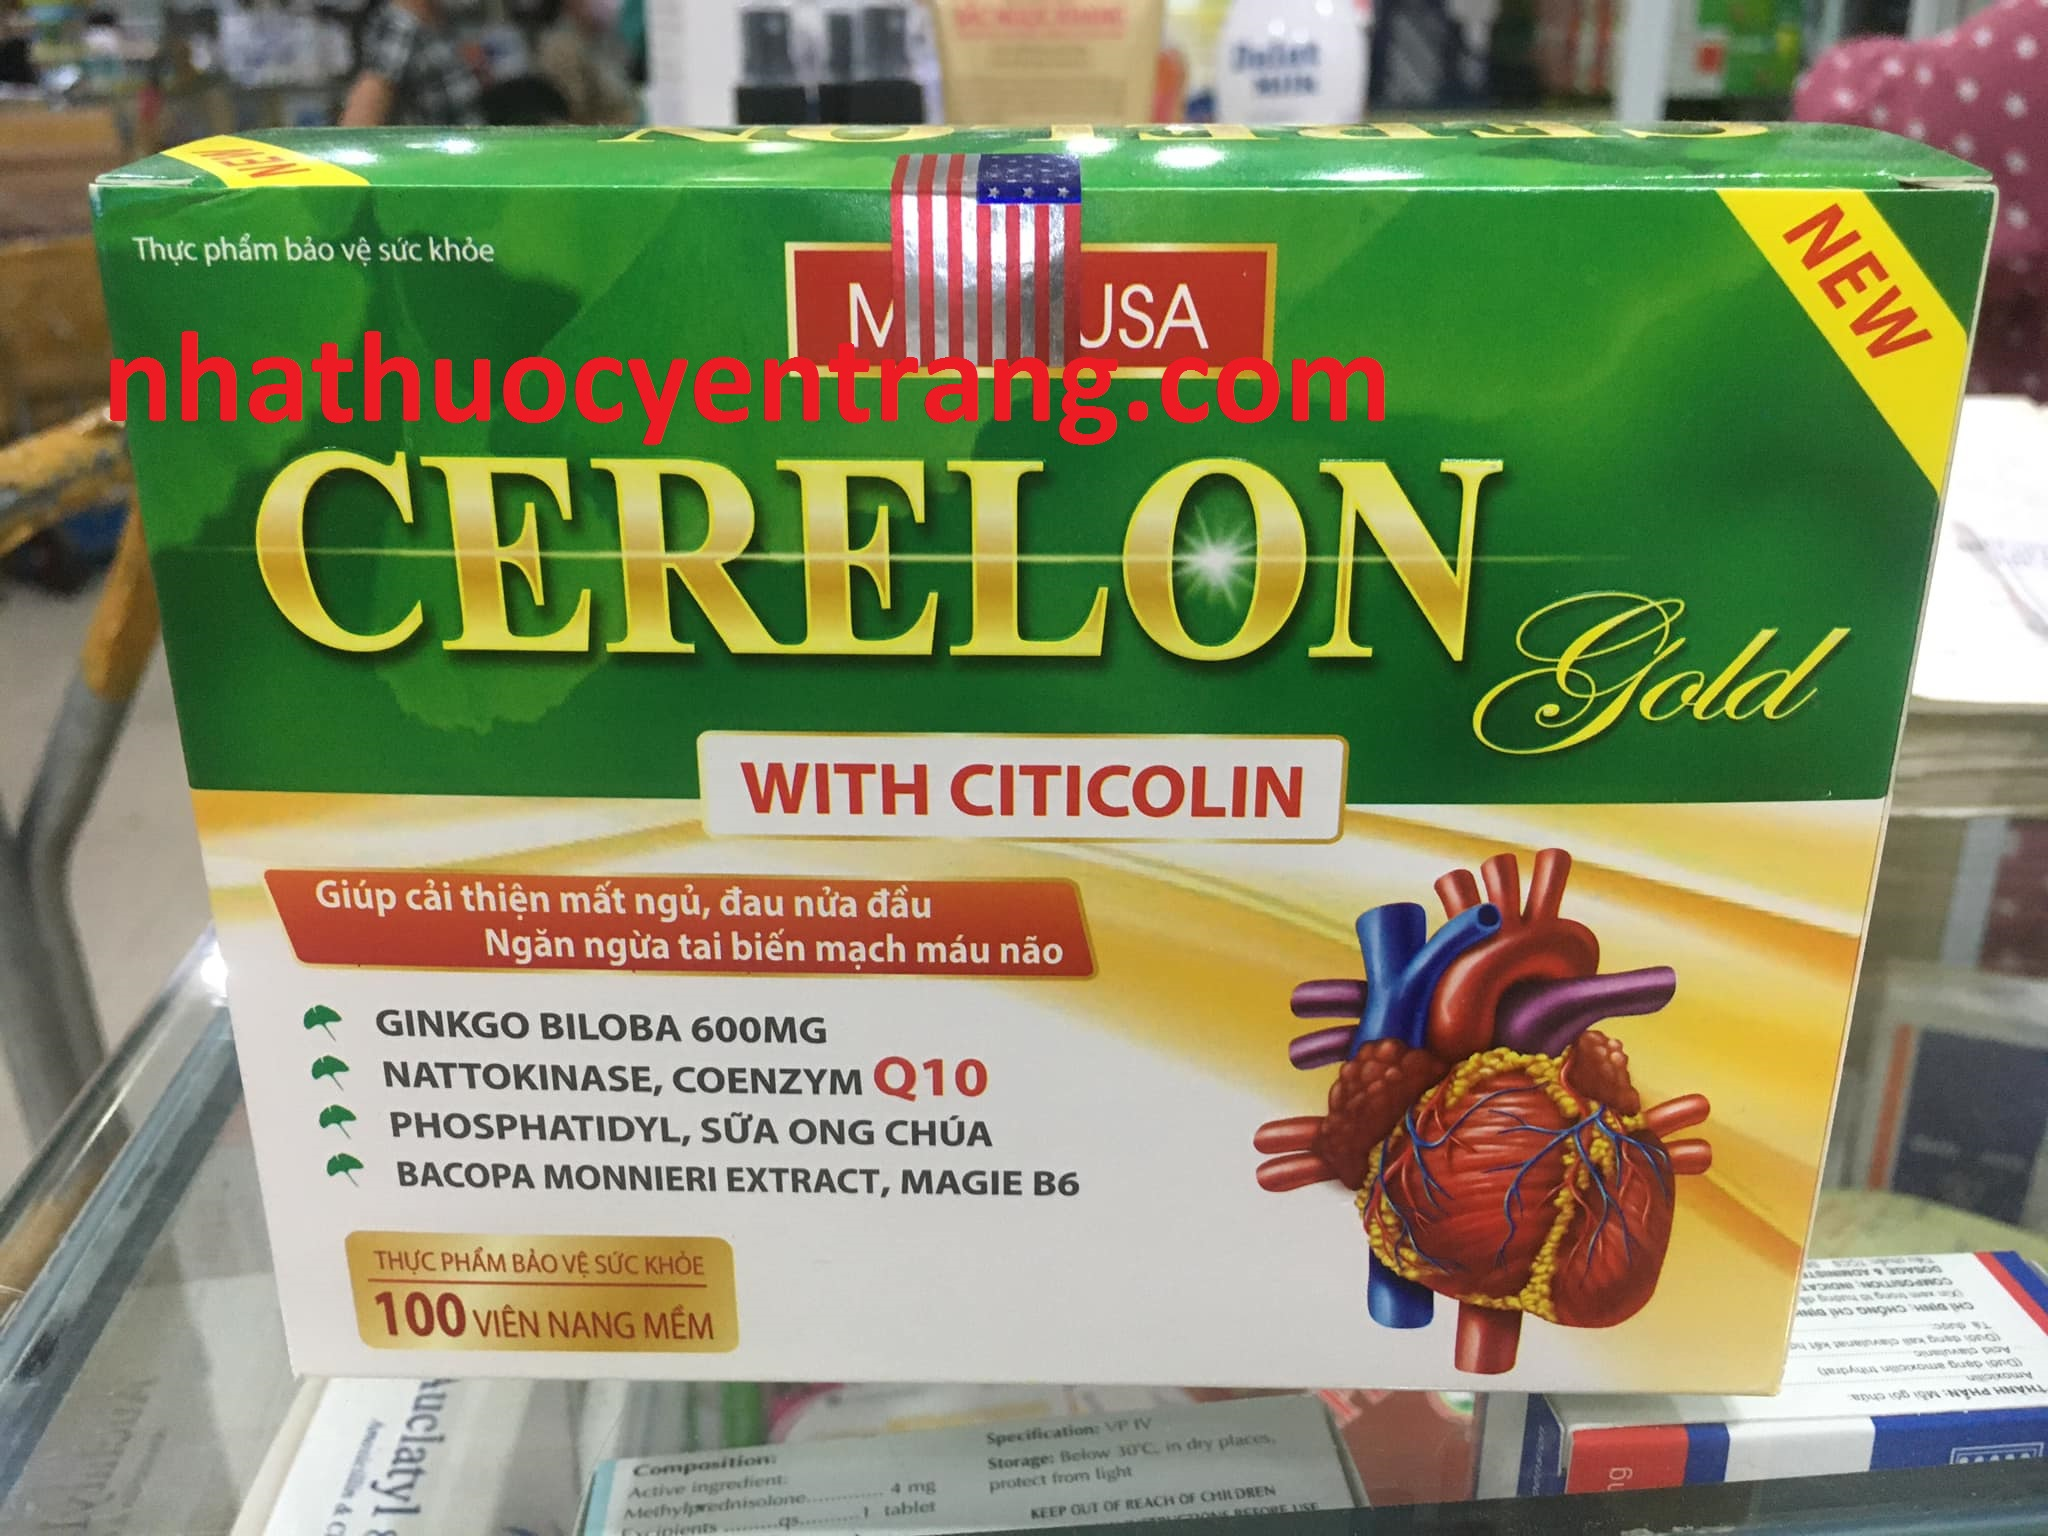 Cerelon gold with citicolin